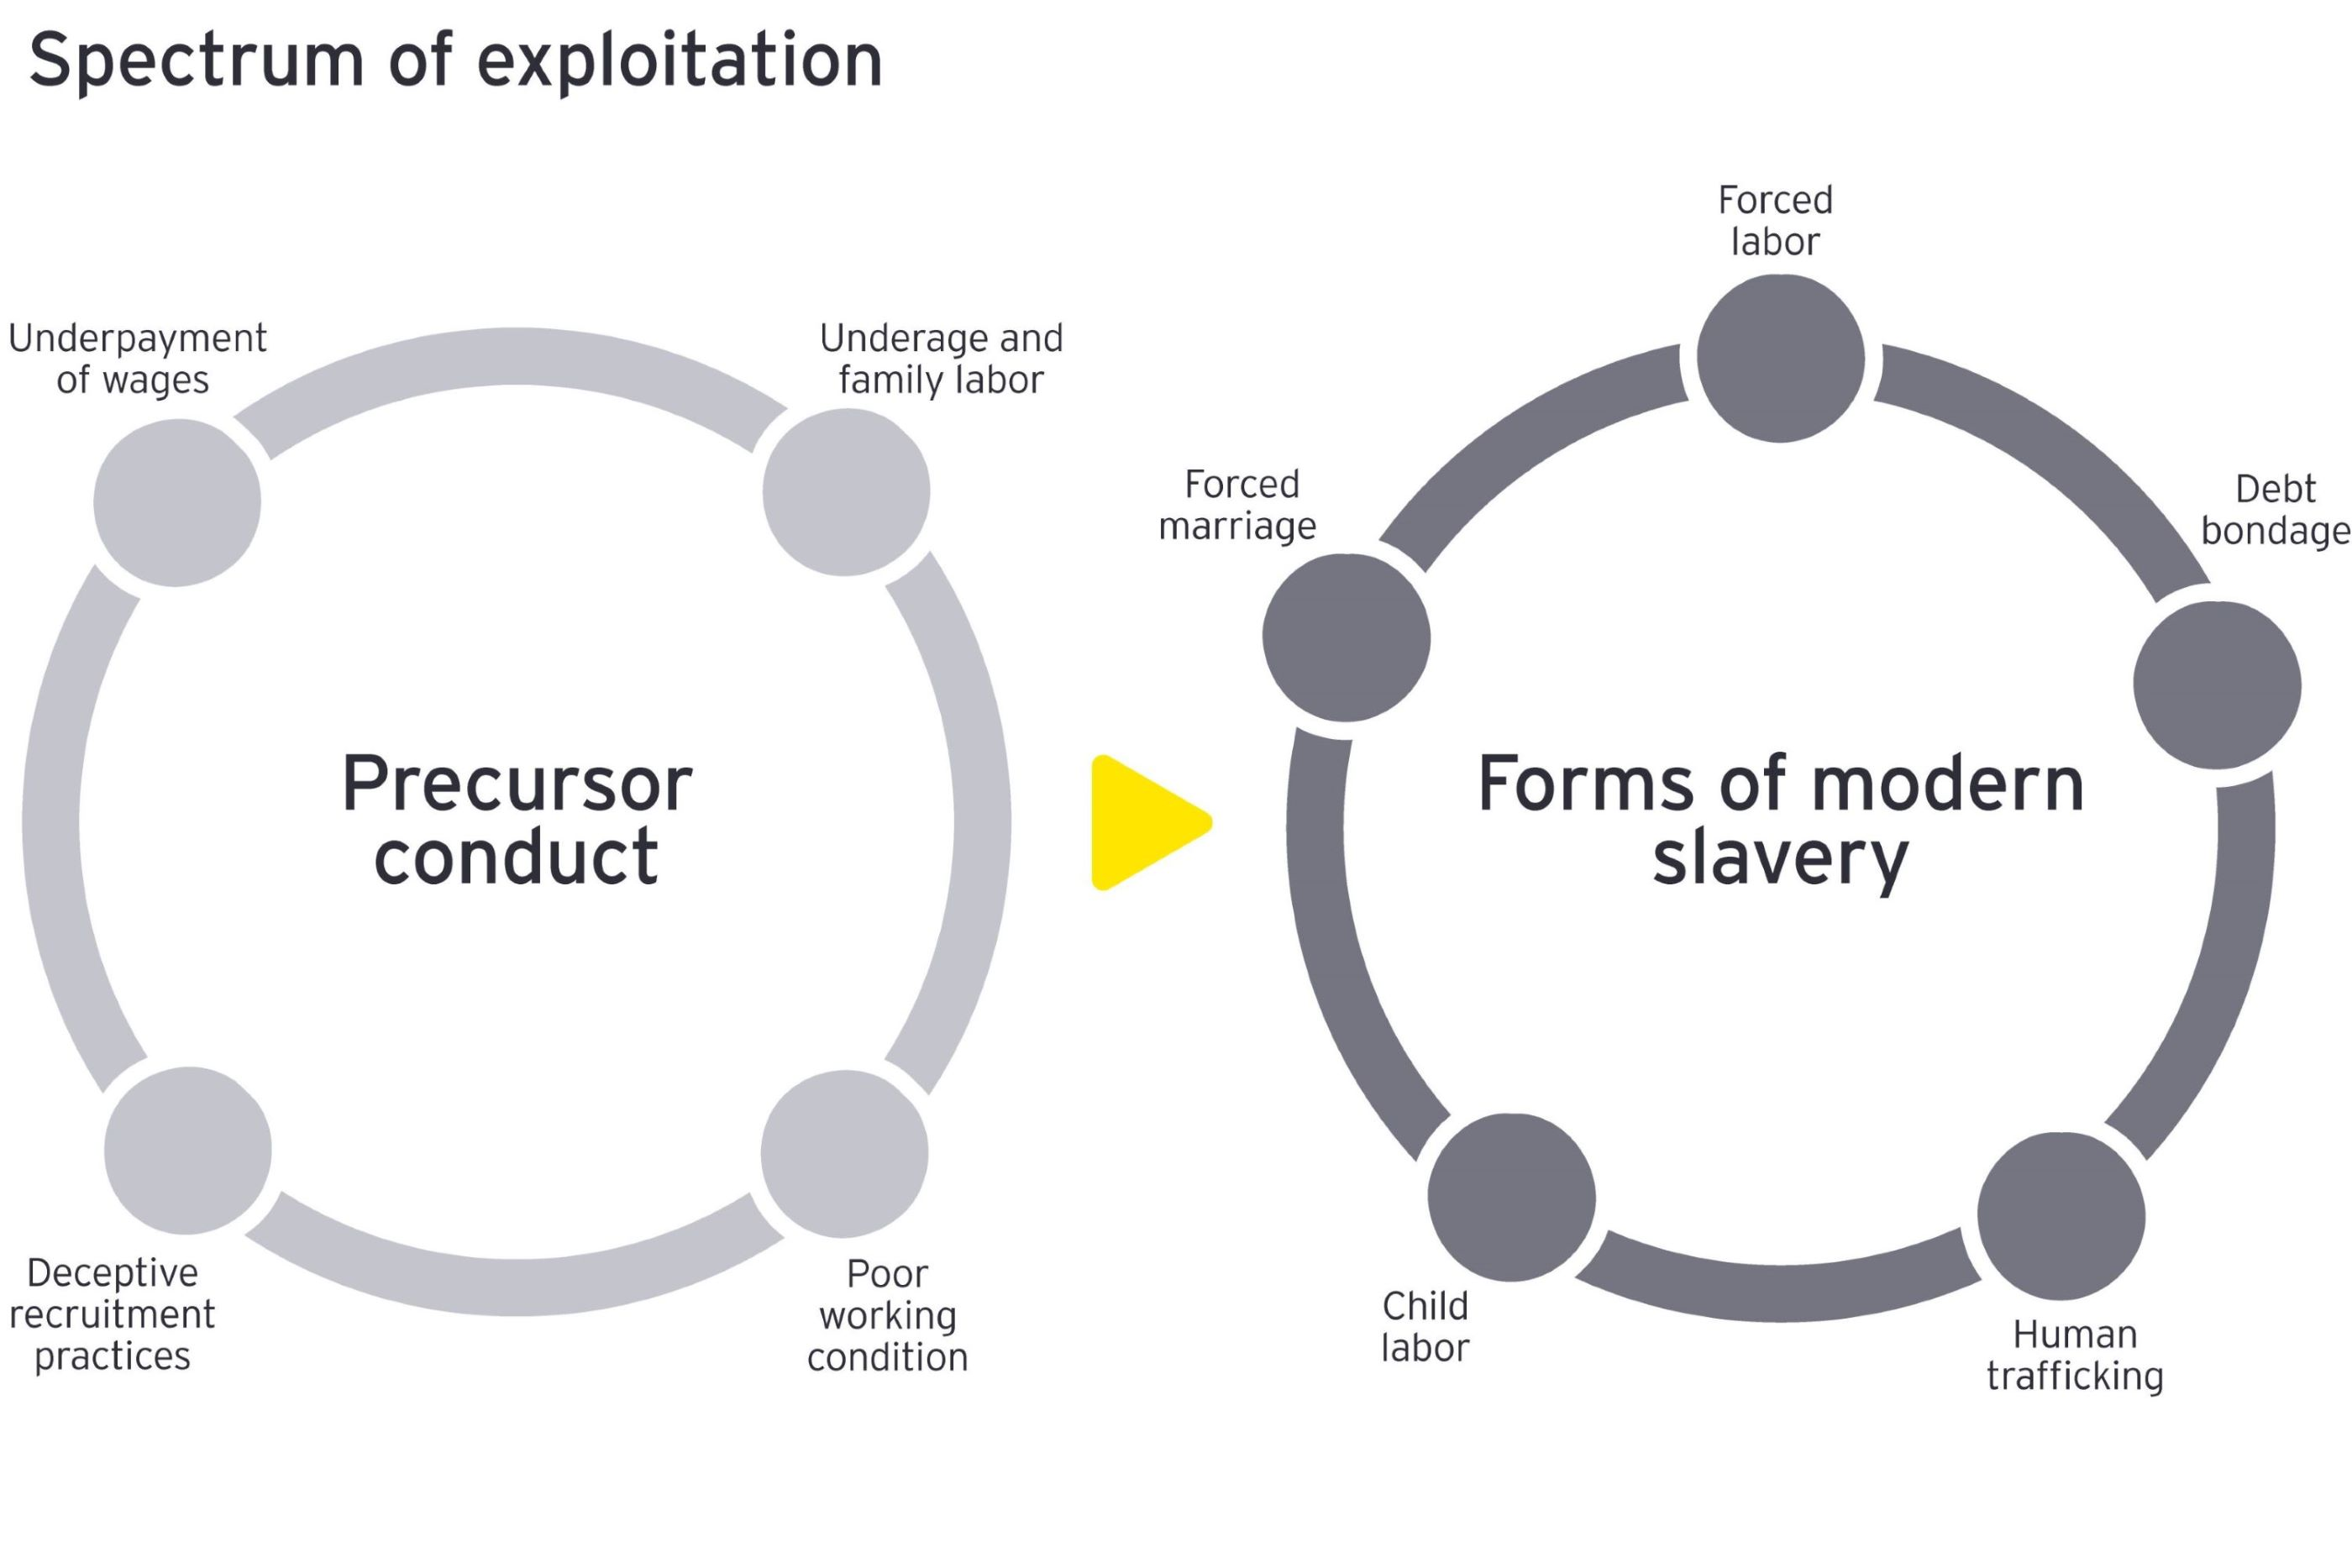 Graphic: Spectrum of exploitation